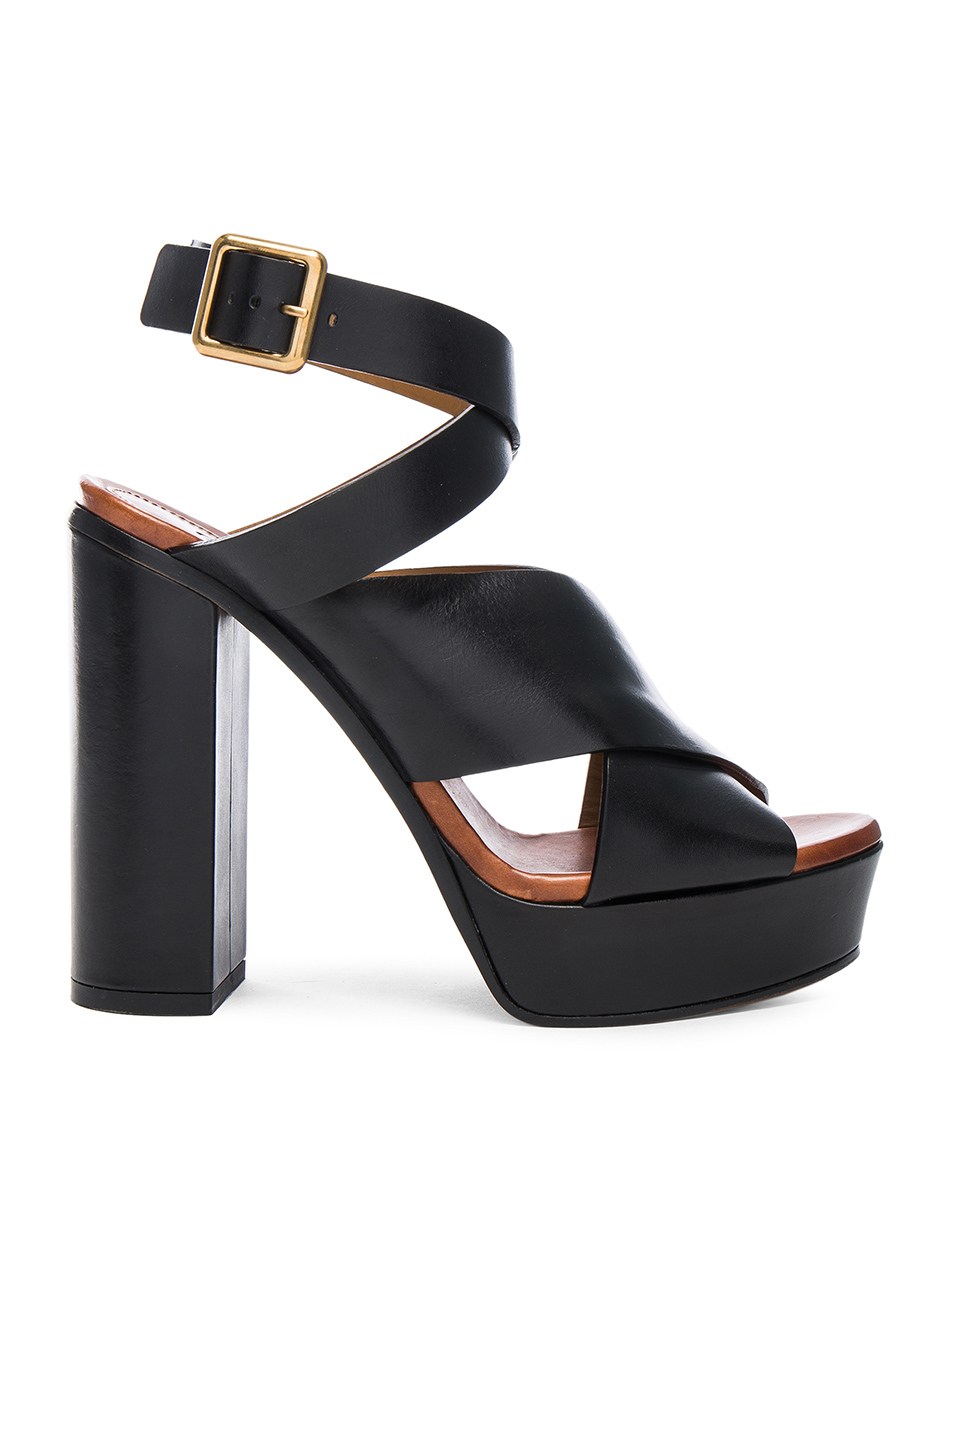 ChloÉ Ankle Strap Platform Sandal (women) In Black